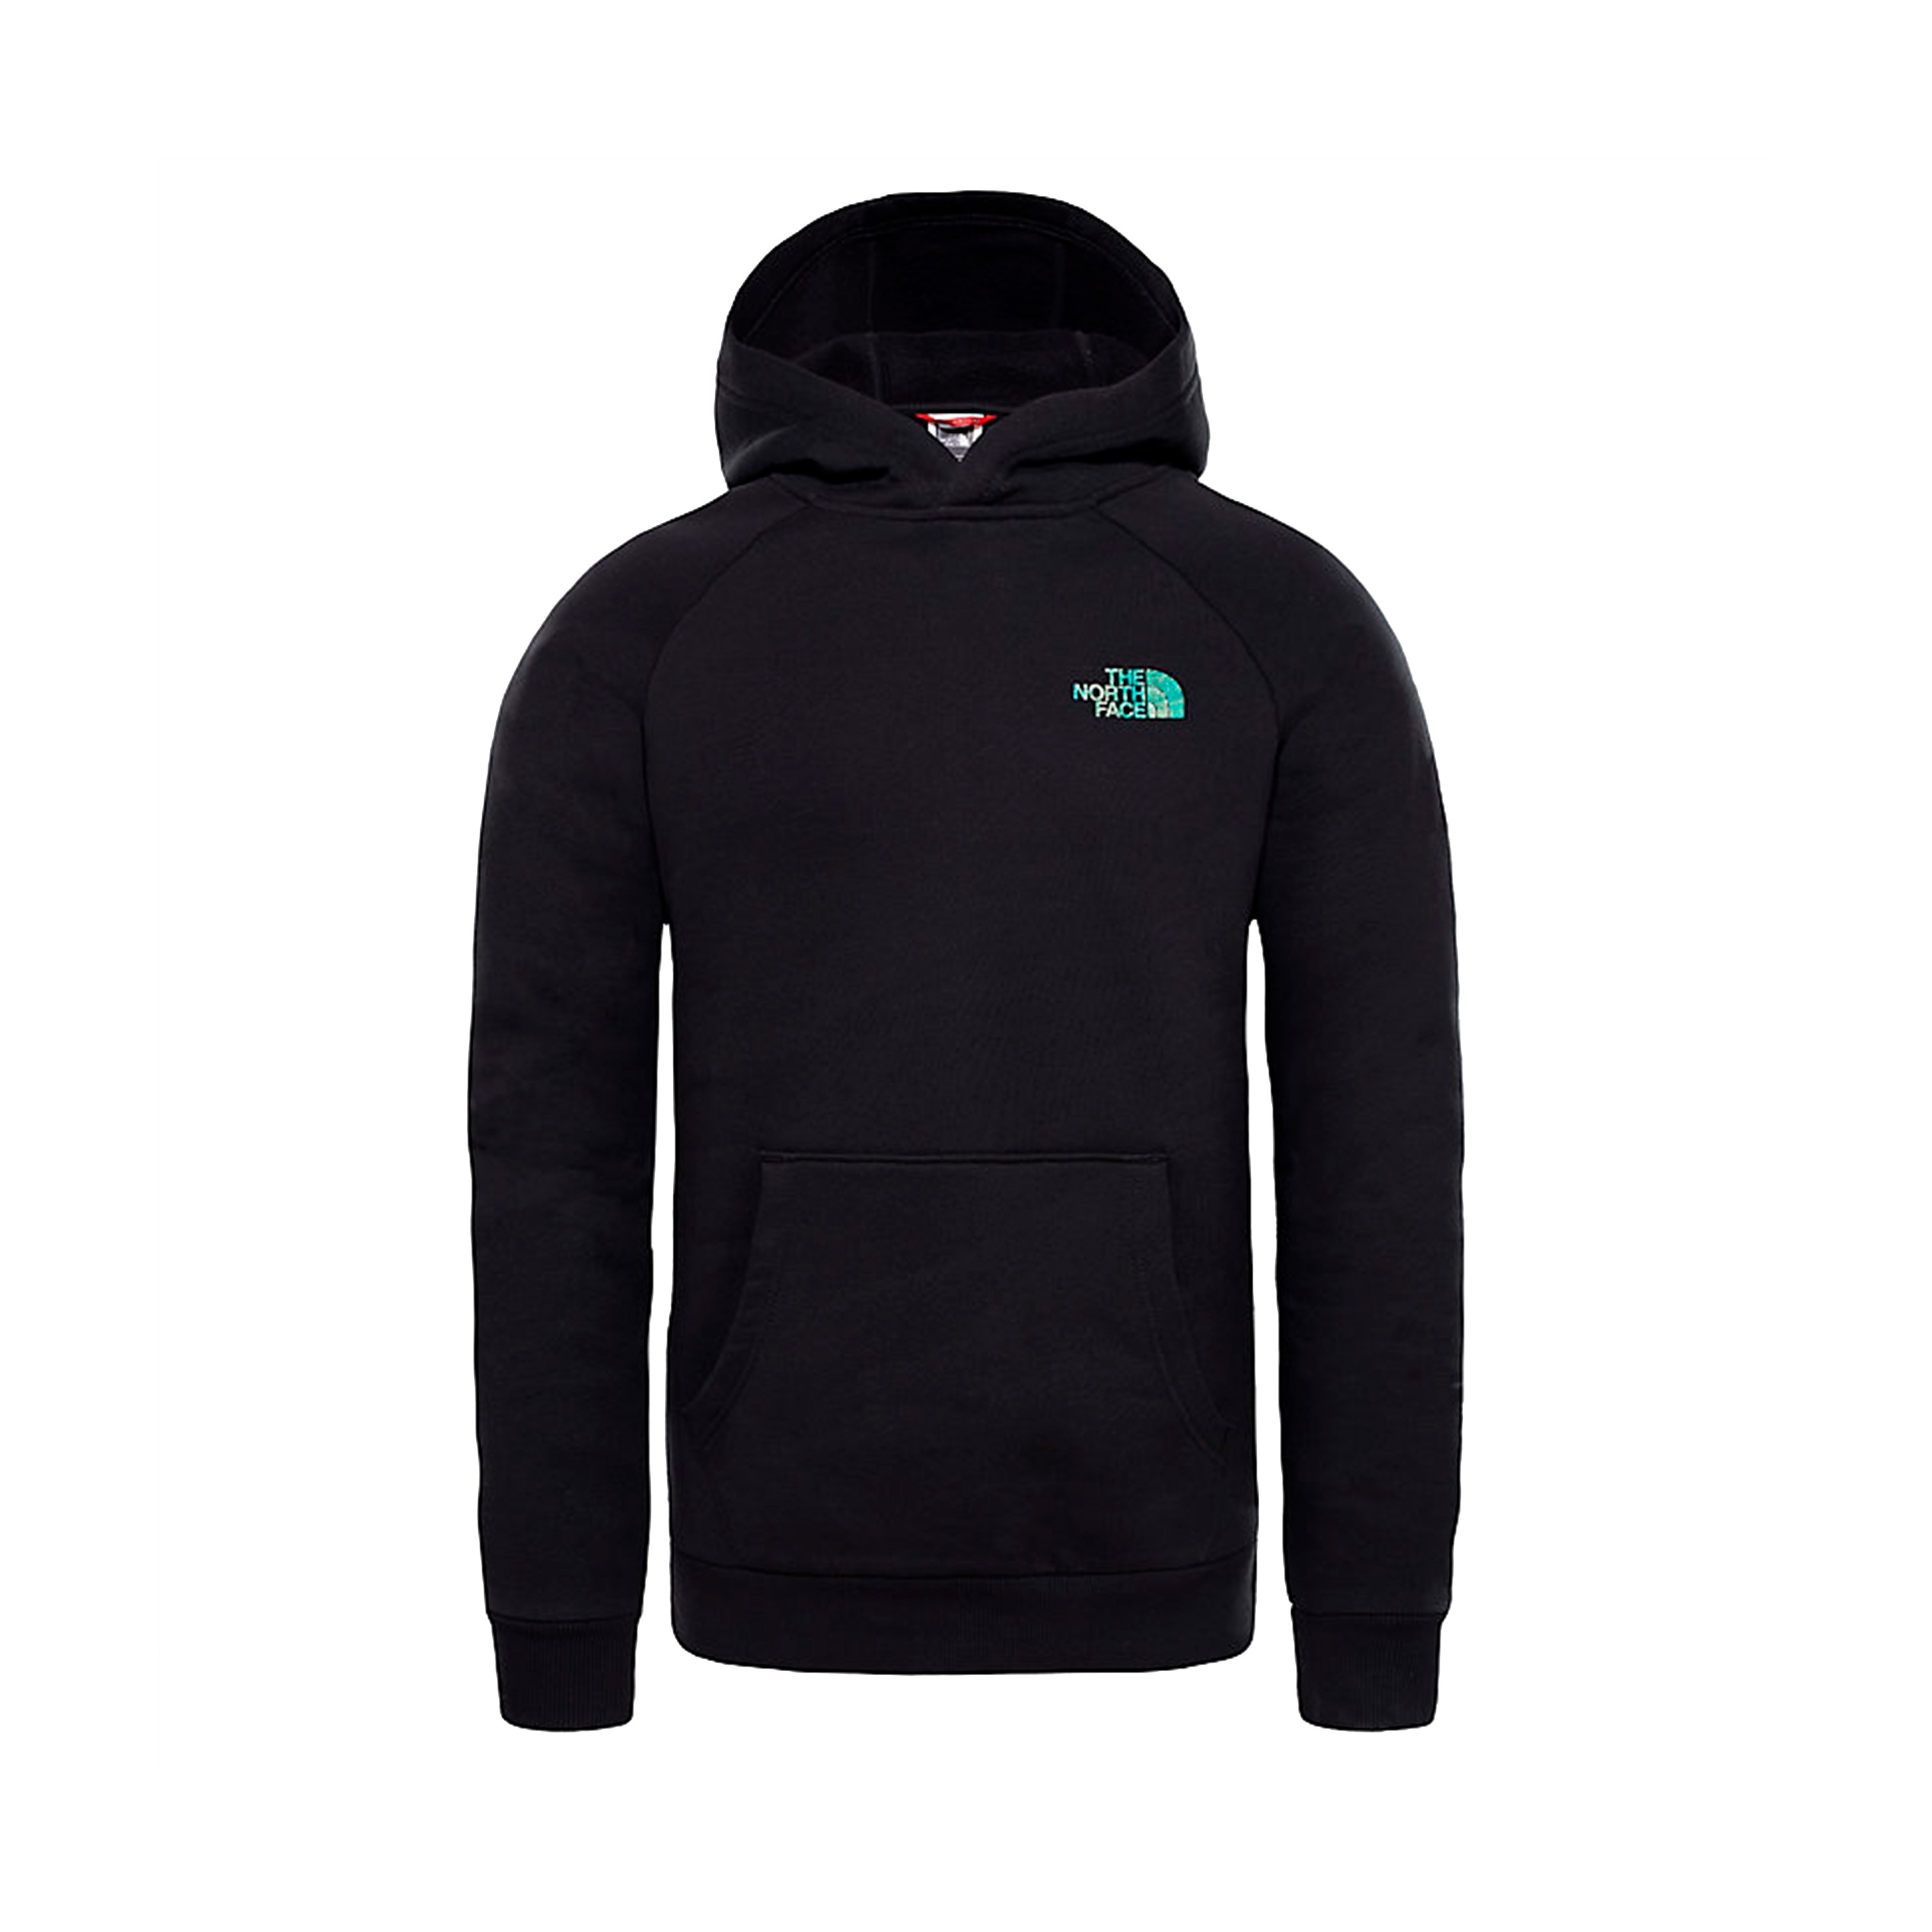 96bde5fc4 The North Face Red Box Raglan Pullover Hooded Sweatshirt 'Iridescent  Collection' (TNF Black/Iridescent Multi)